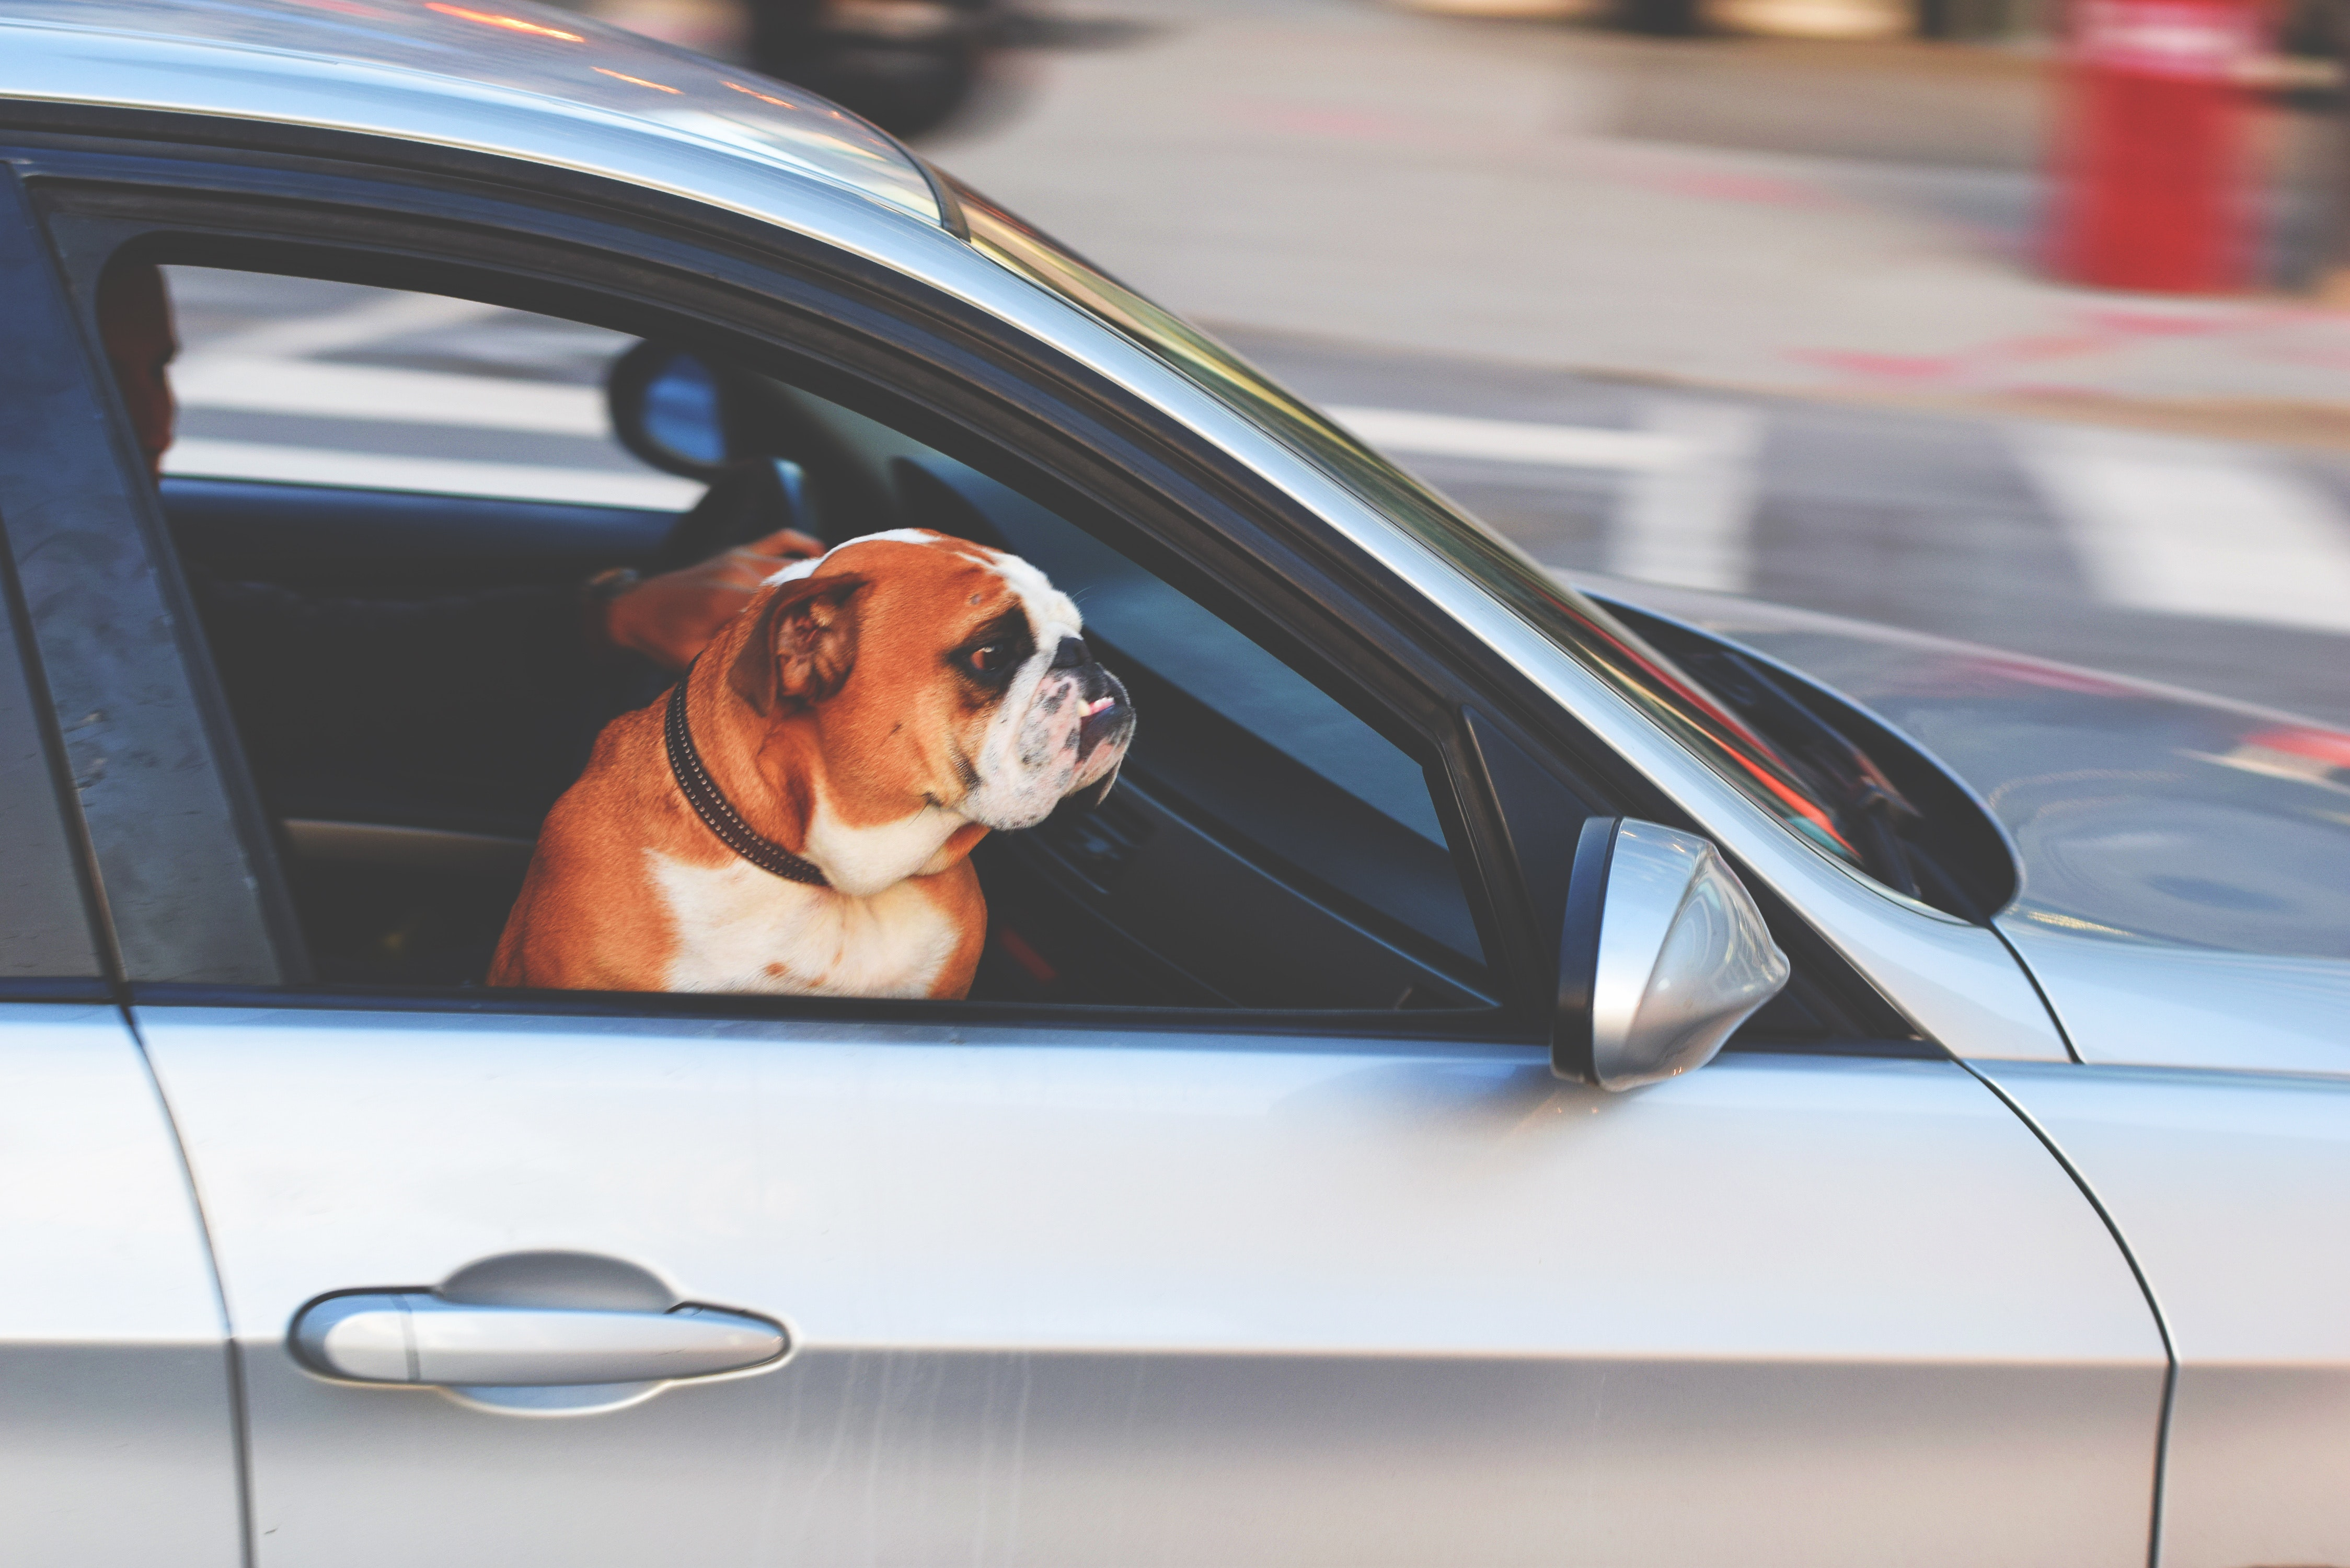 adorable adult animal 236452 - The Dangers of Leaving Your Dog Inside Your Car